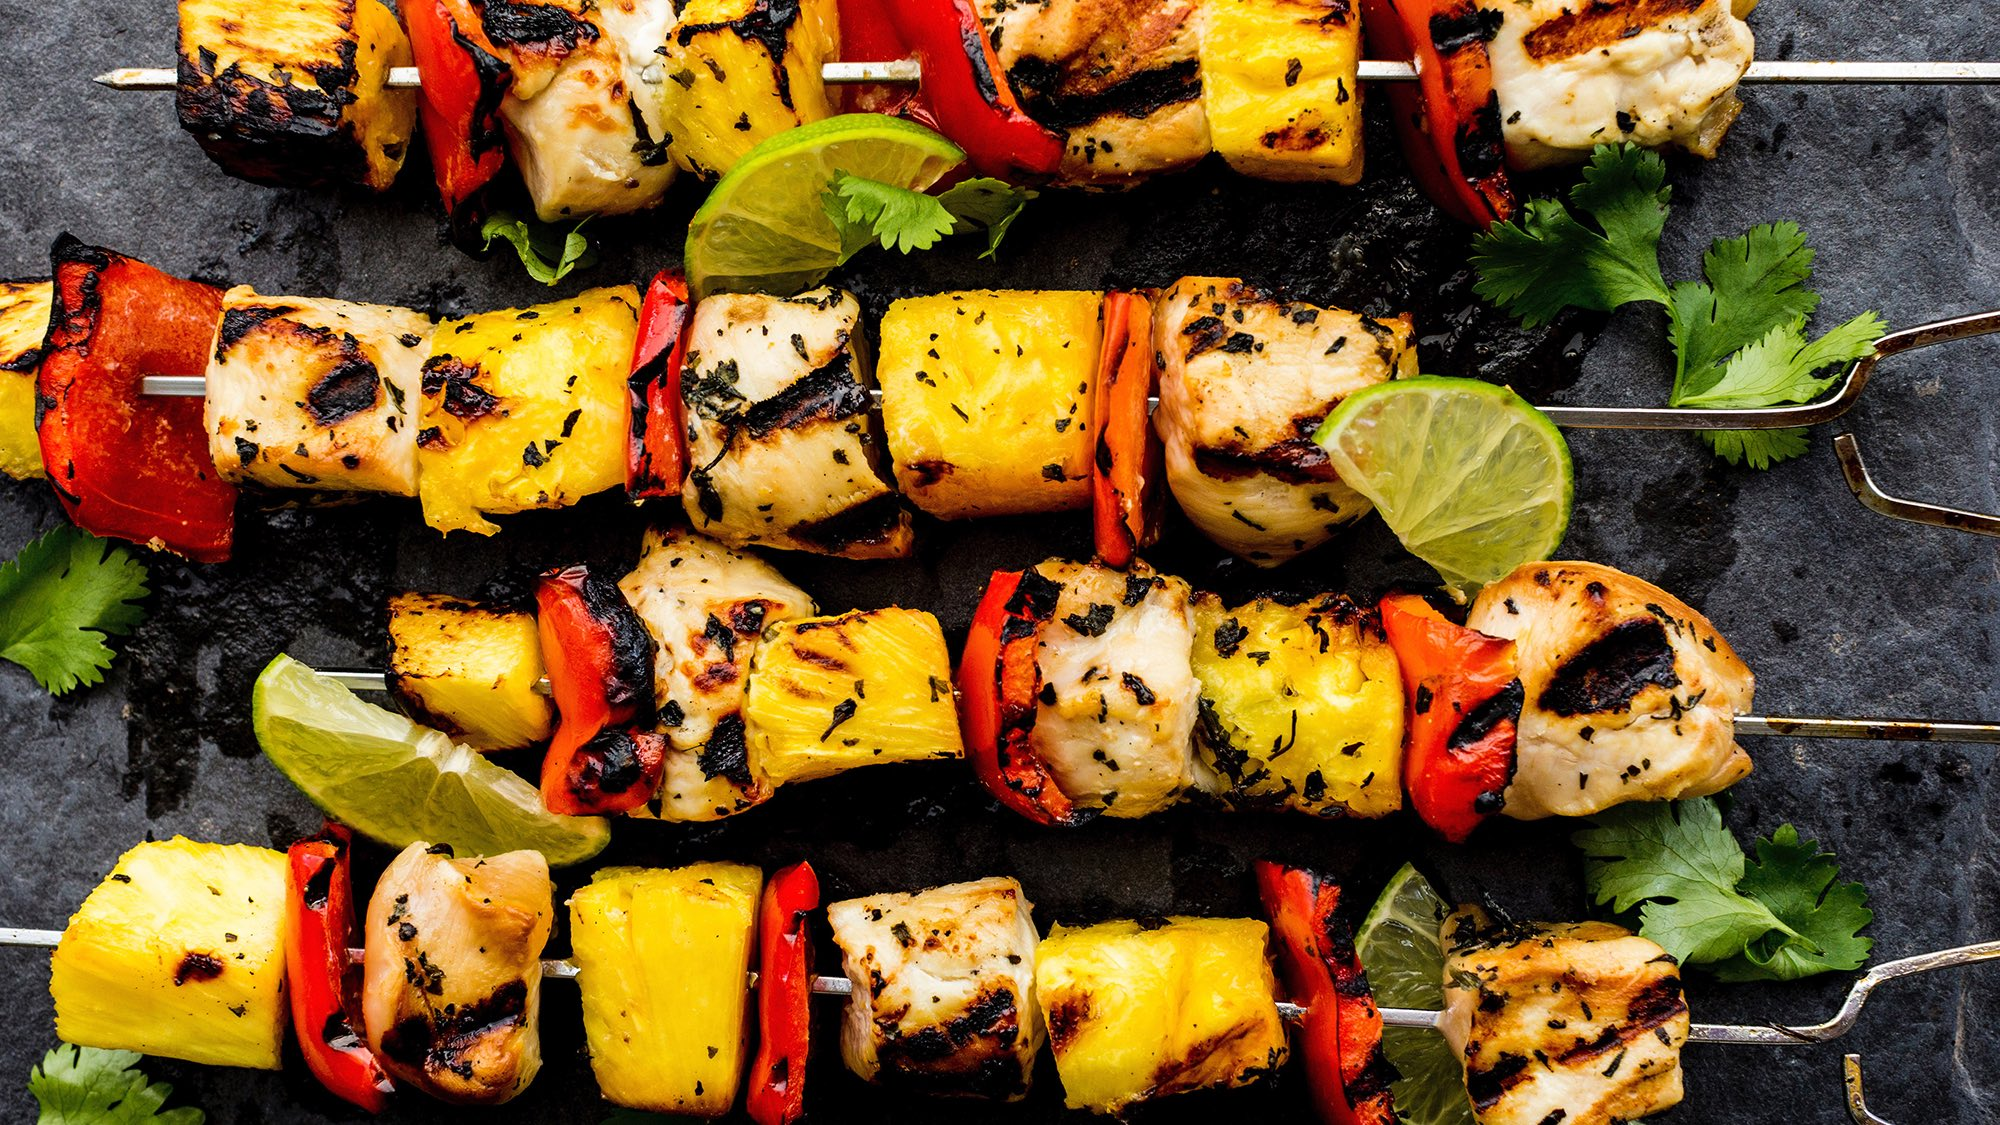 McCormick Gourmet Pineapple Chicken Skewers